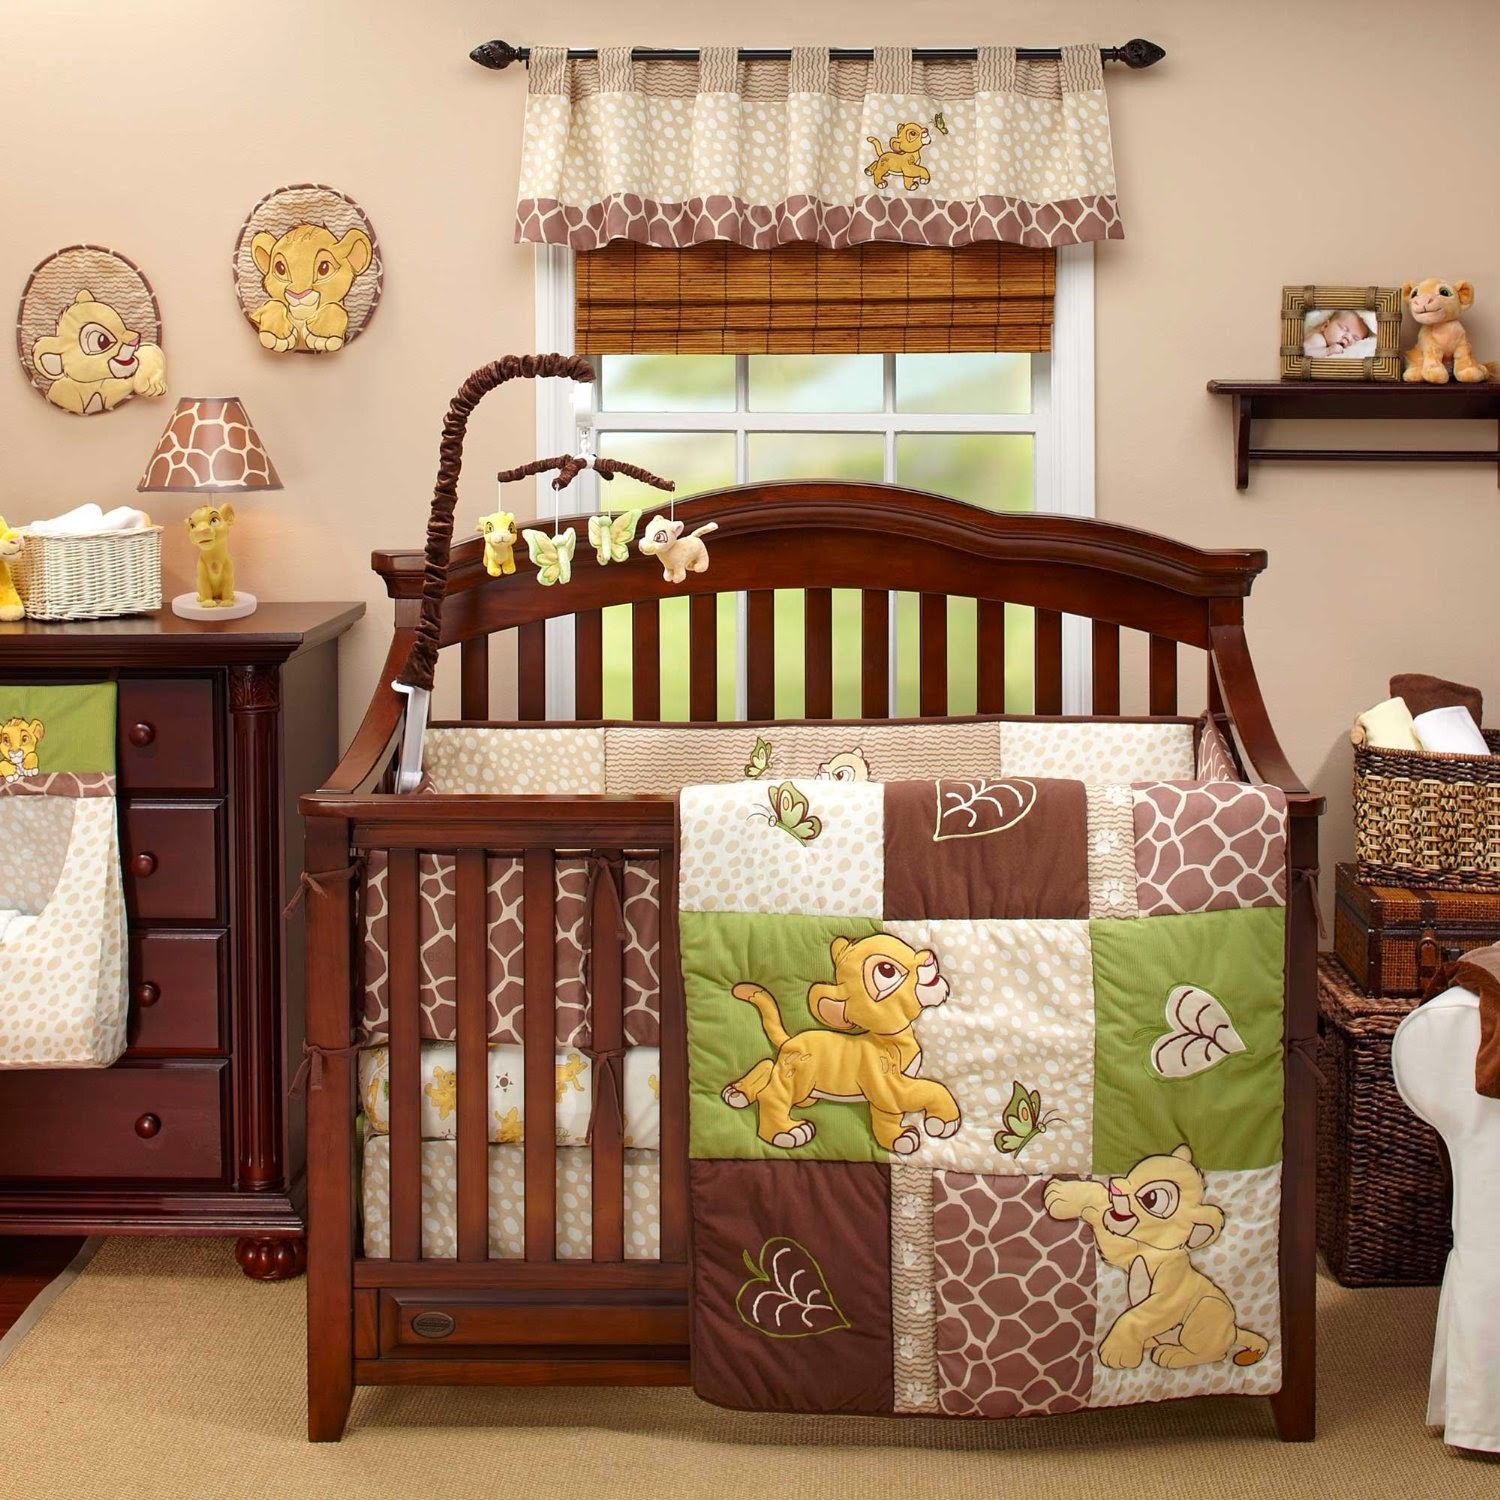 Dillards Comforter Sets | Cheap Crib Sets | Lion King Nursery Set